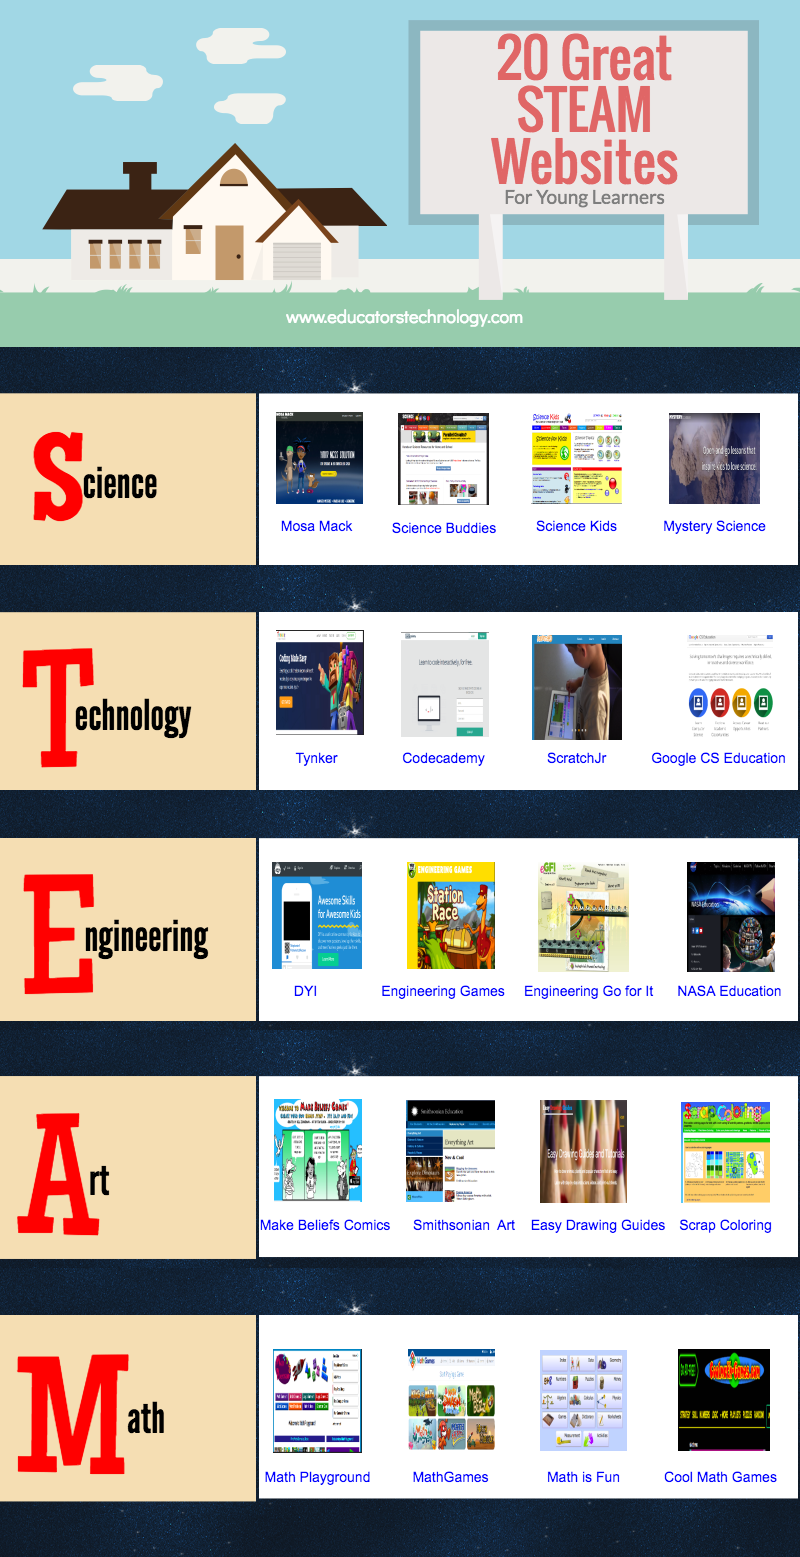 20 Great STEAM Websites for Young Learners (Educational Technology ...